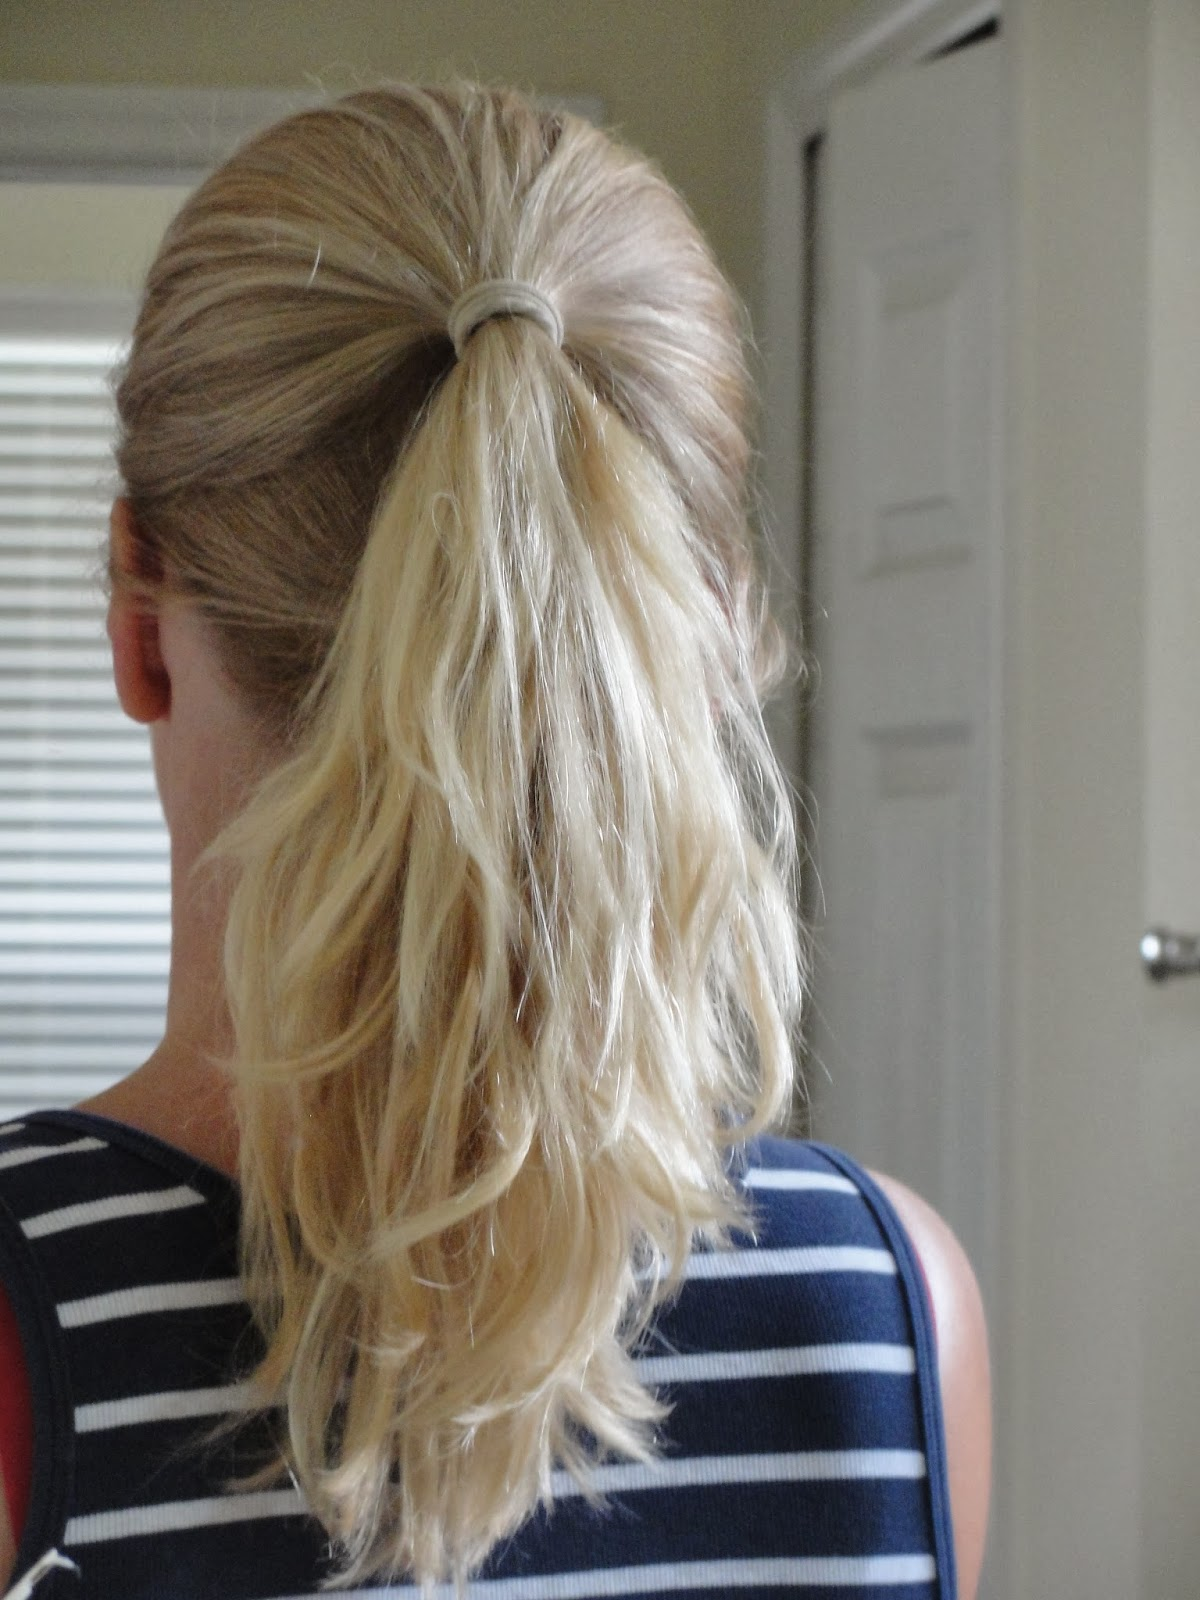 How To Make Your Ponytail Appear Longer Without Extensions